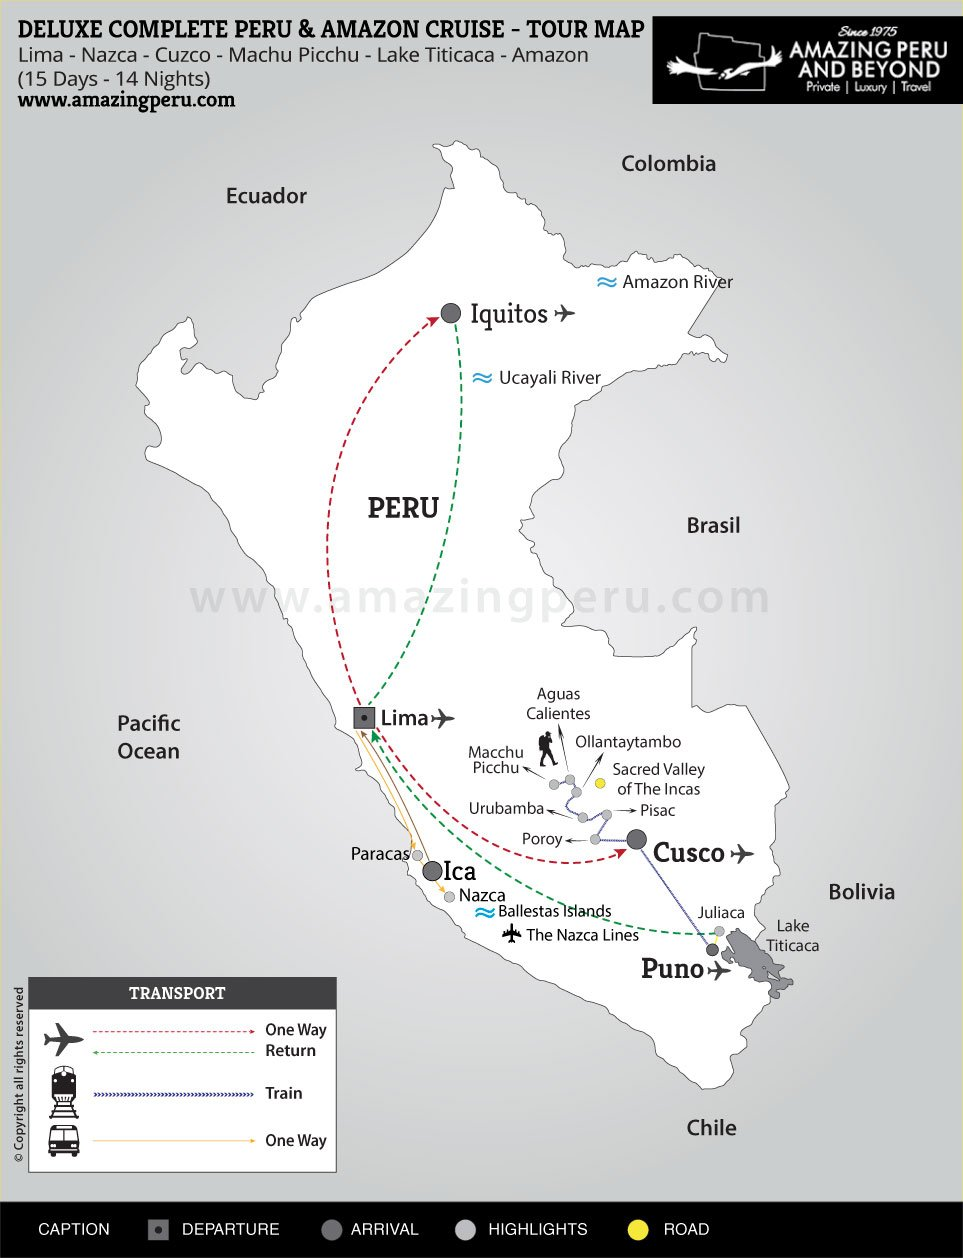 Deluxe Complete Peru & Amazon Cruise - 15 days / 14 nights.